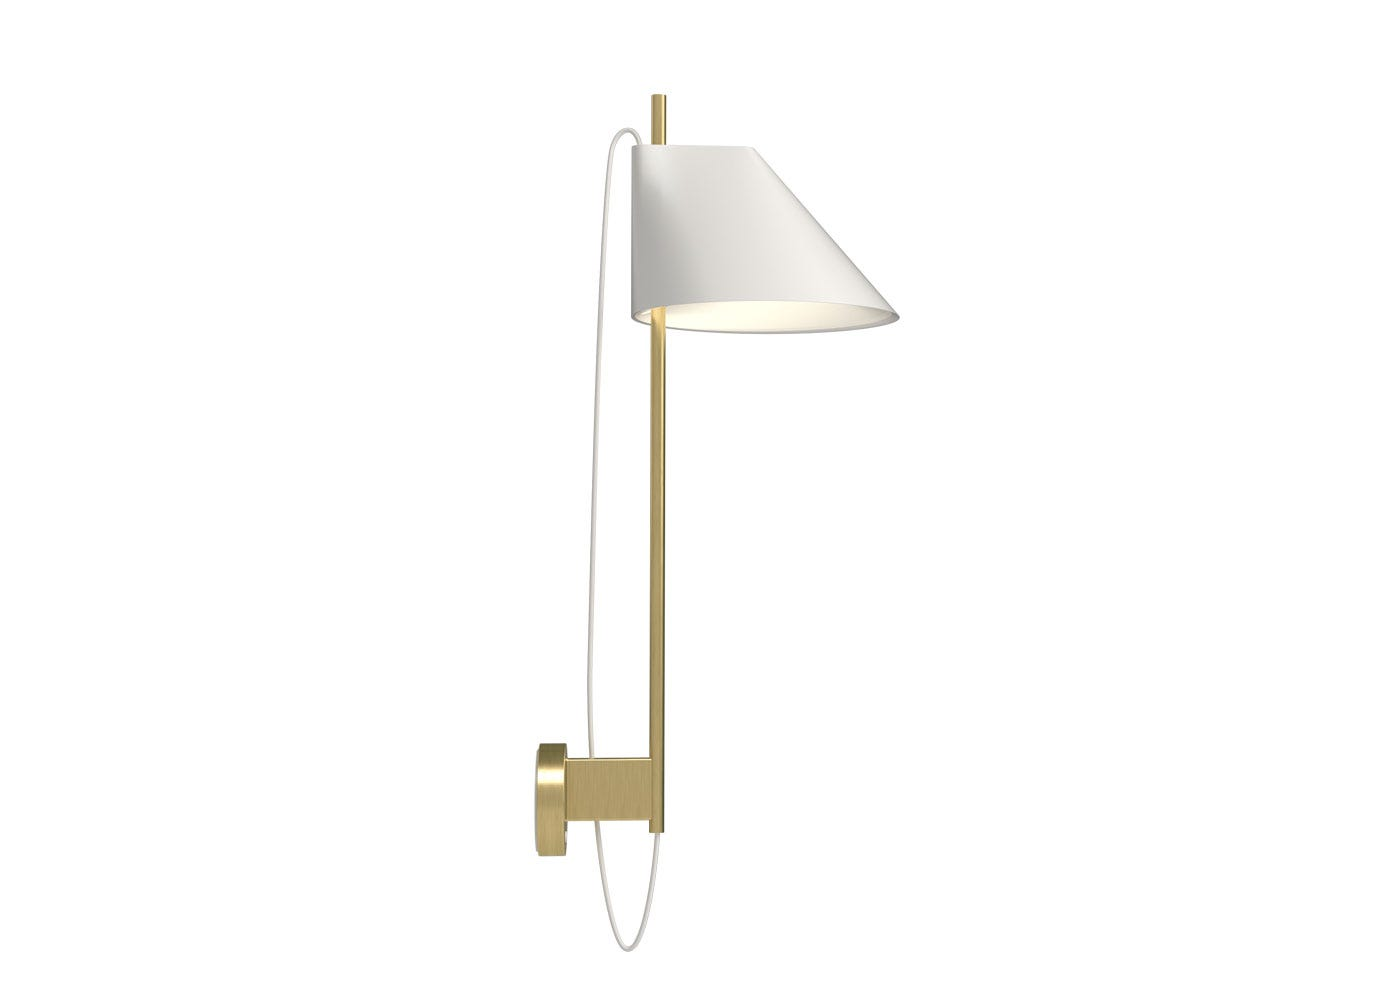 As shown Yuh wall lamp brass stem with white shade.